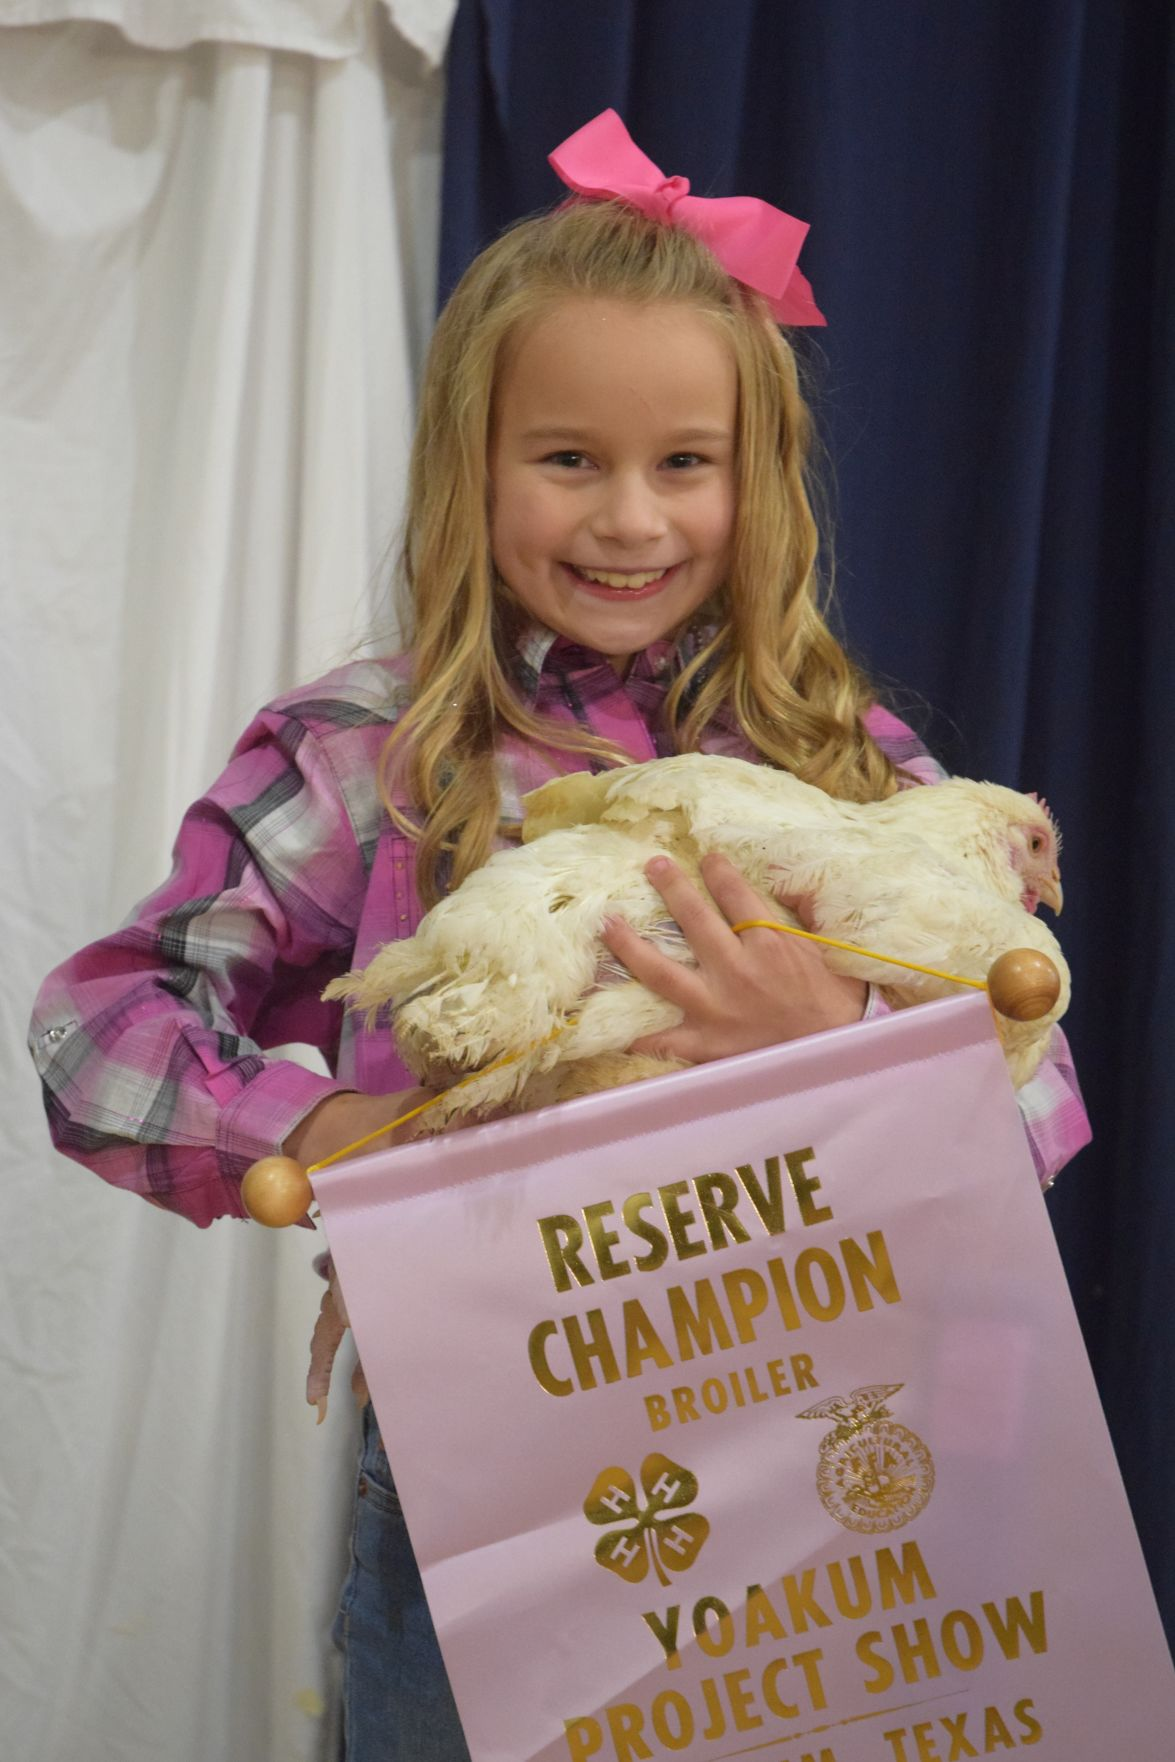 Yoakum Student Receives 11 500 For Champion Steer Local News Victoriaadvocate Com